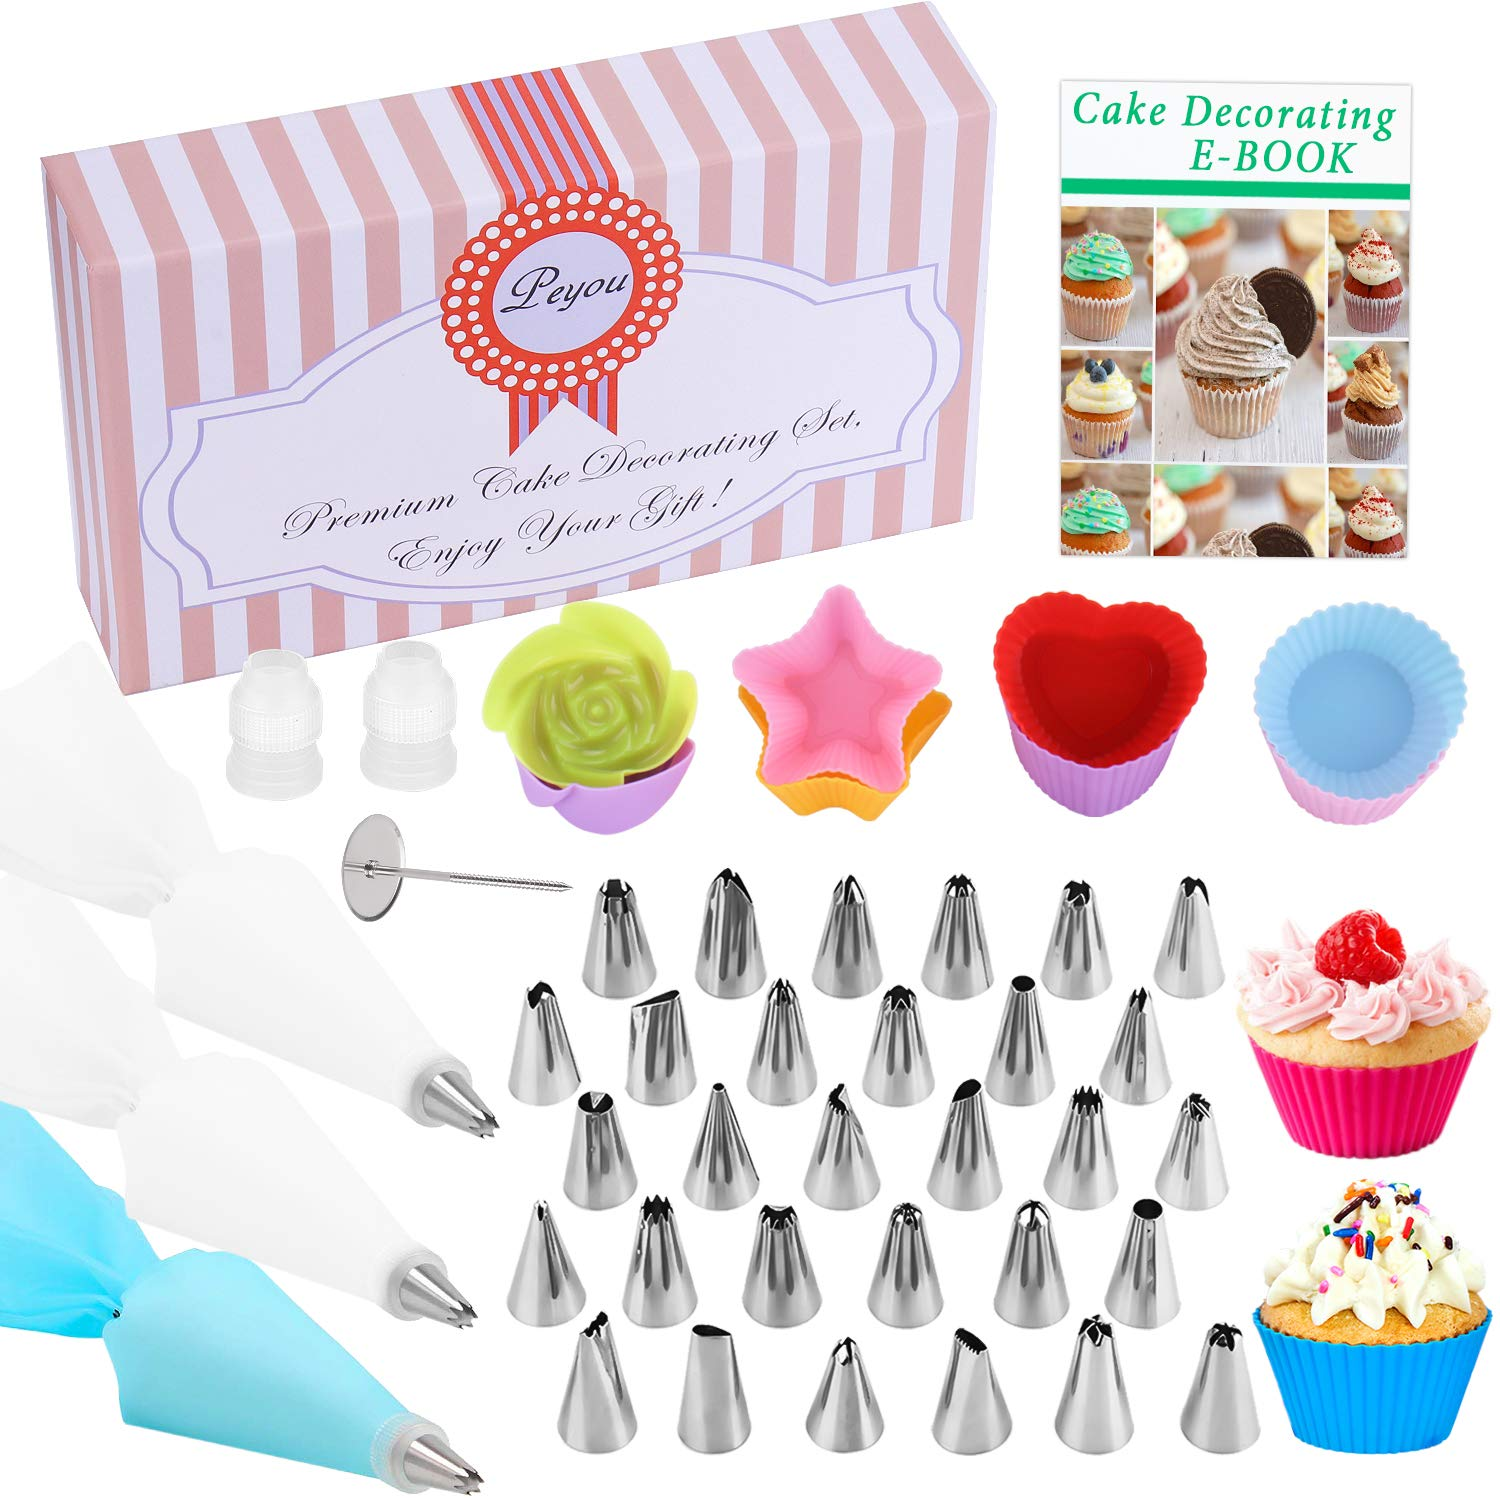 PEYOU Cake Decorating Set 52 Pcs, Cake Decorating Supplies: 30 Stainless Steel Icing Tips, 8 Cupcakes, 10 Disposable Piping Bags, 1 Flower Nail, 1 Silicone Pastry Bag, 2 Couplers for Cakes Cupcakes Baking Cookies Pastries Bonus Exquisite Gift Box+E-Book